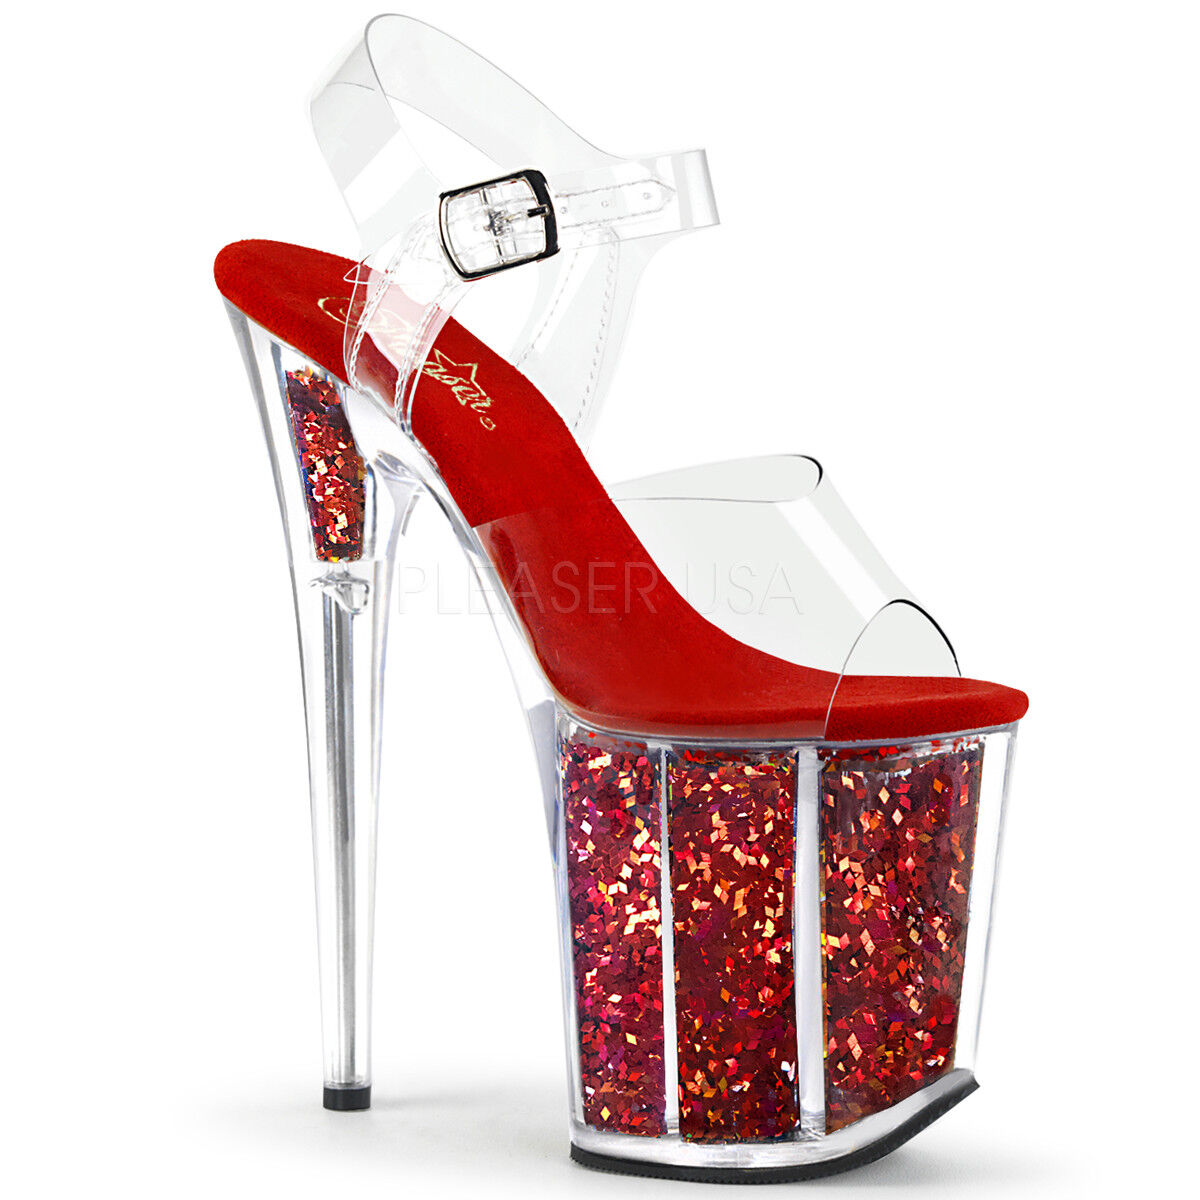 PLEASER FLAMINGO-808GF rot MULTI GLITTER PLATFORM POLE DANCING SANDALS schuhe